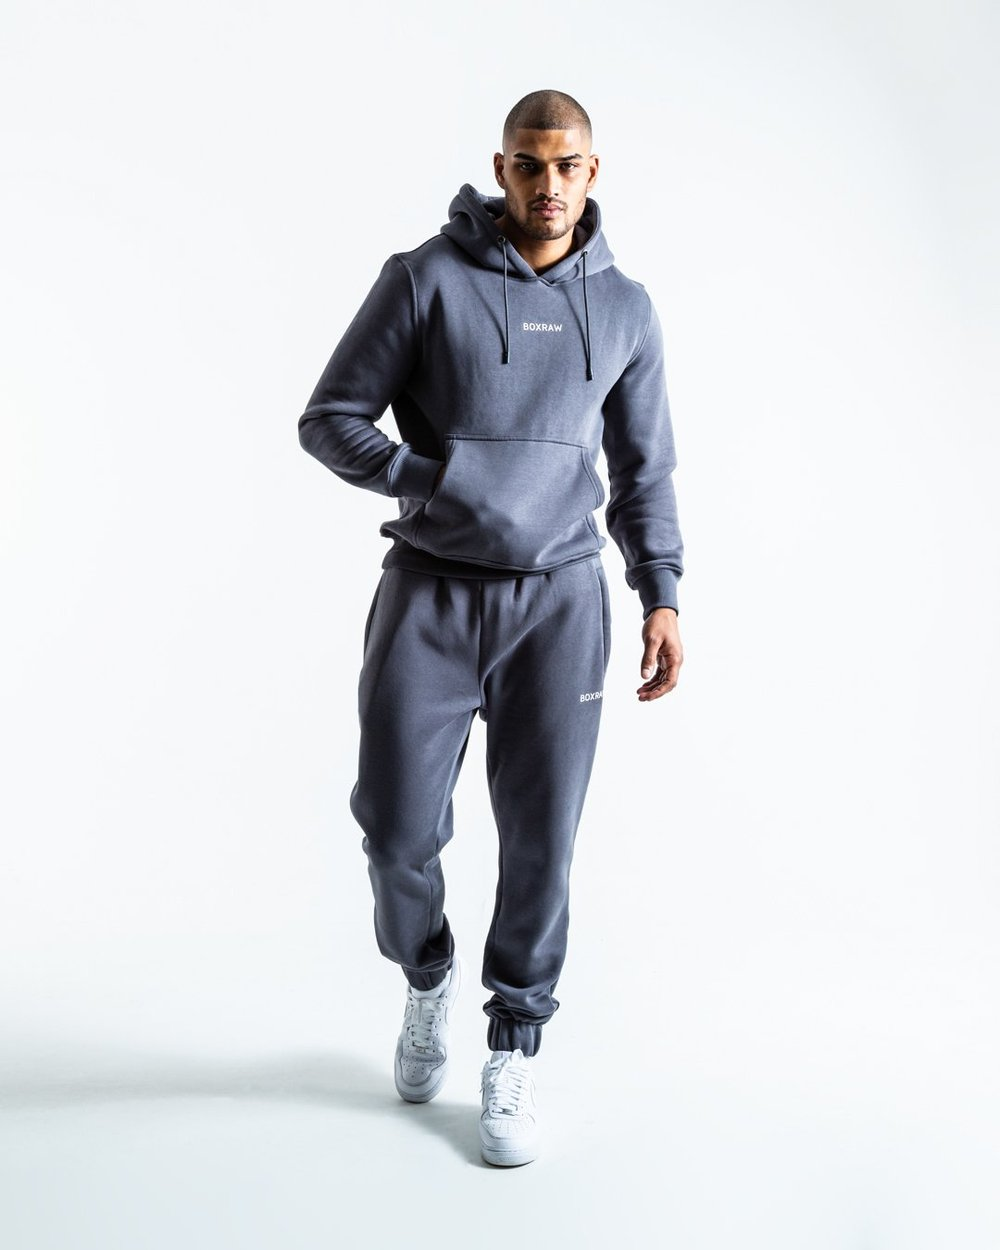 JOHNSON HOODIE - CHARCOAL - Pandemic Fight Gear Inc.